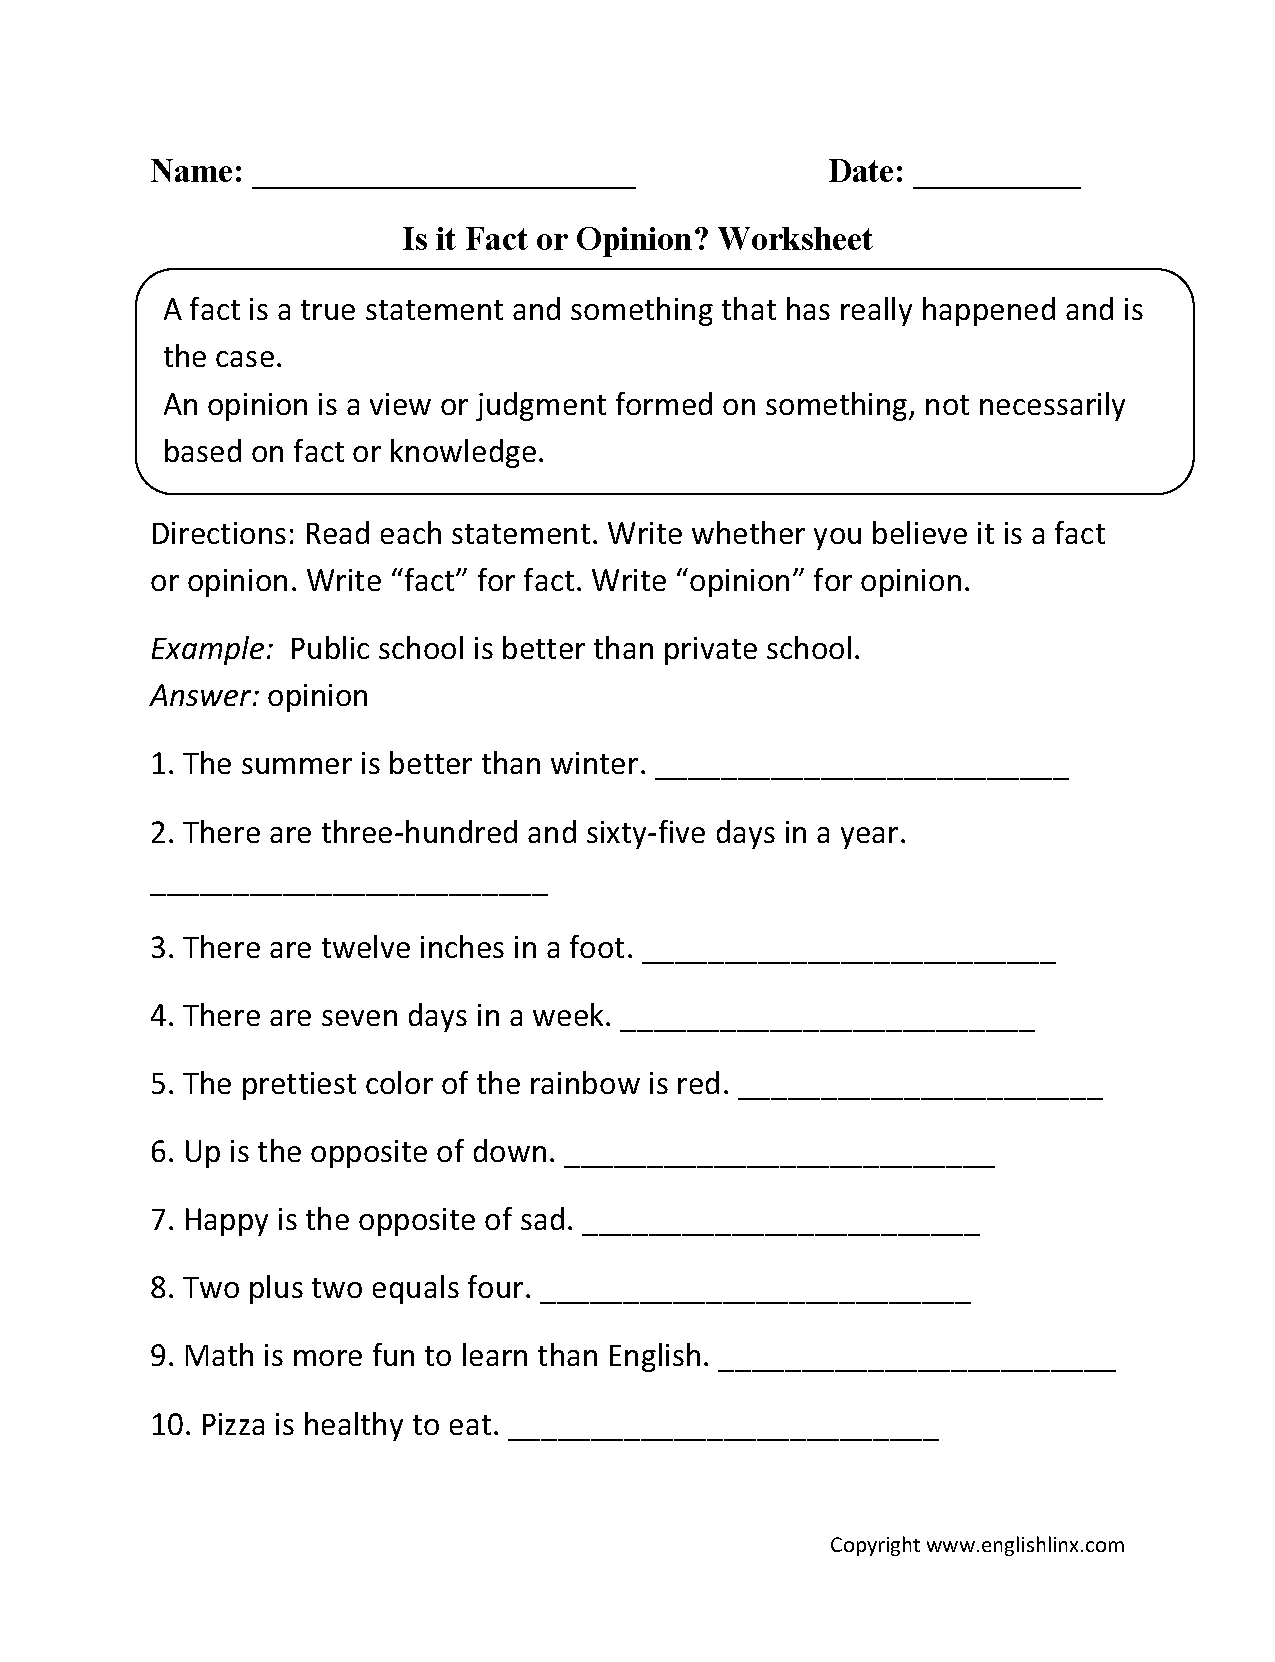 Worksheets Fact And Opinion Worksheets reading worksheets fact and opinion is it or worksheet